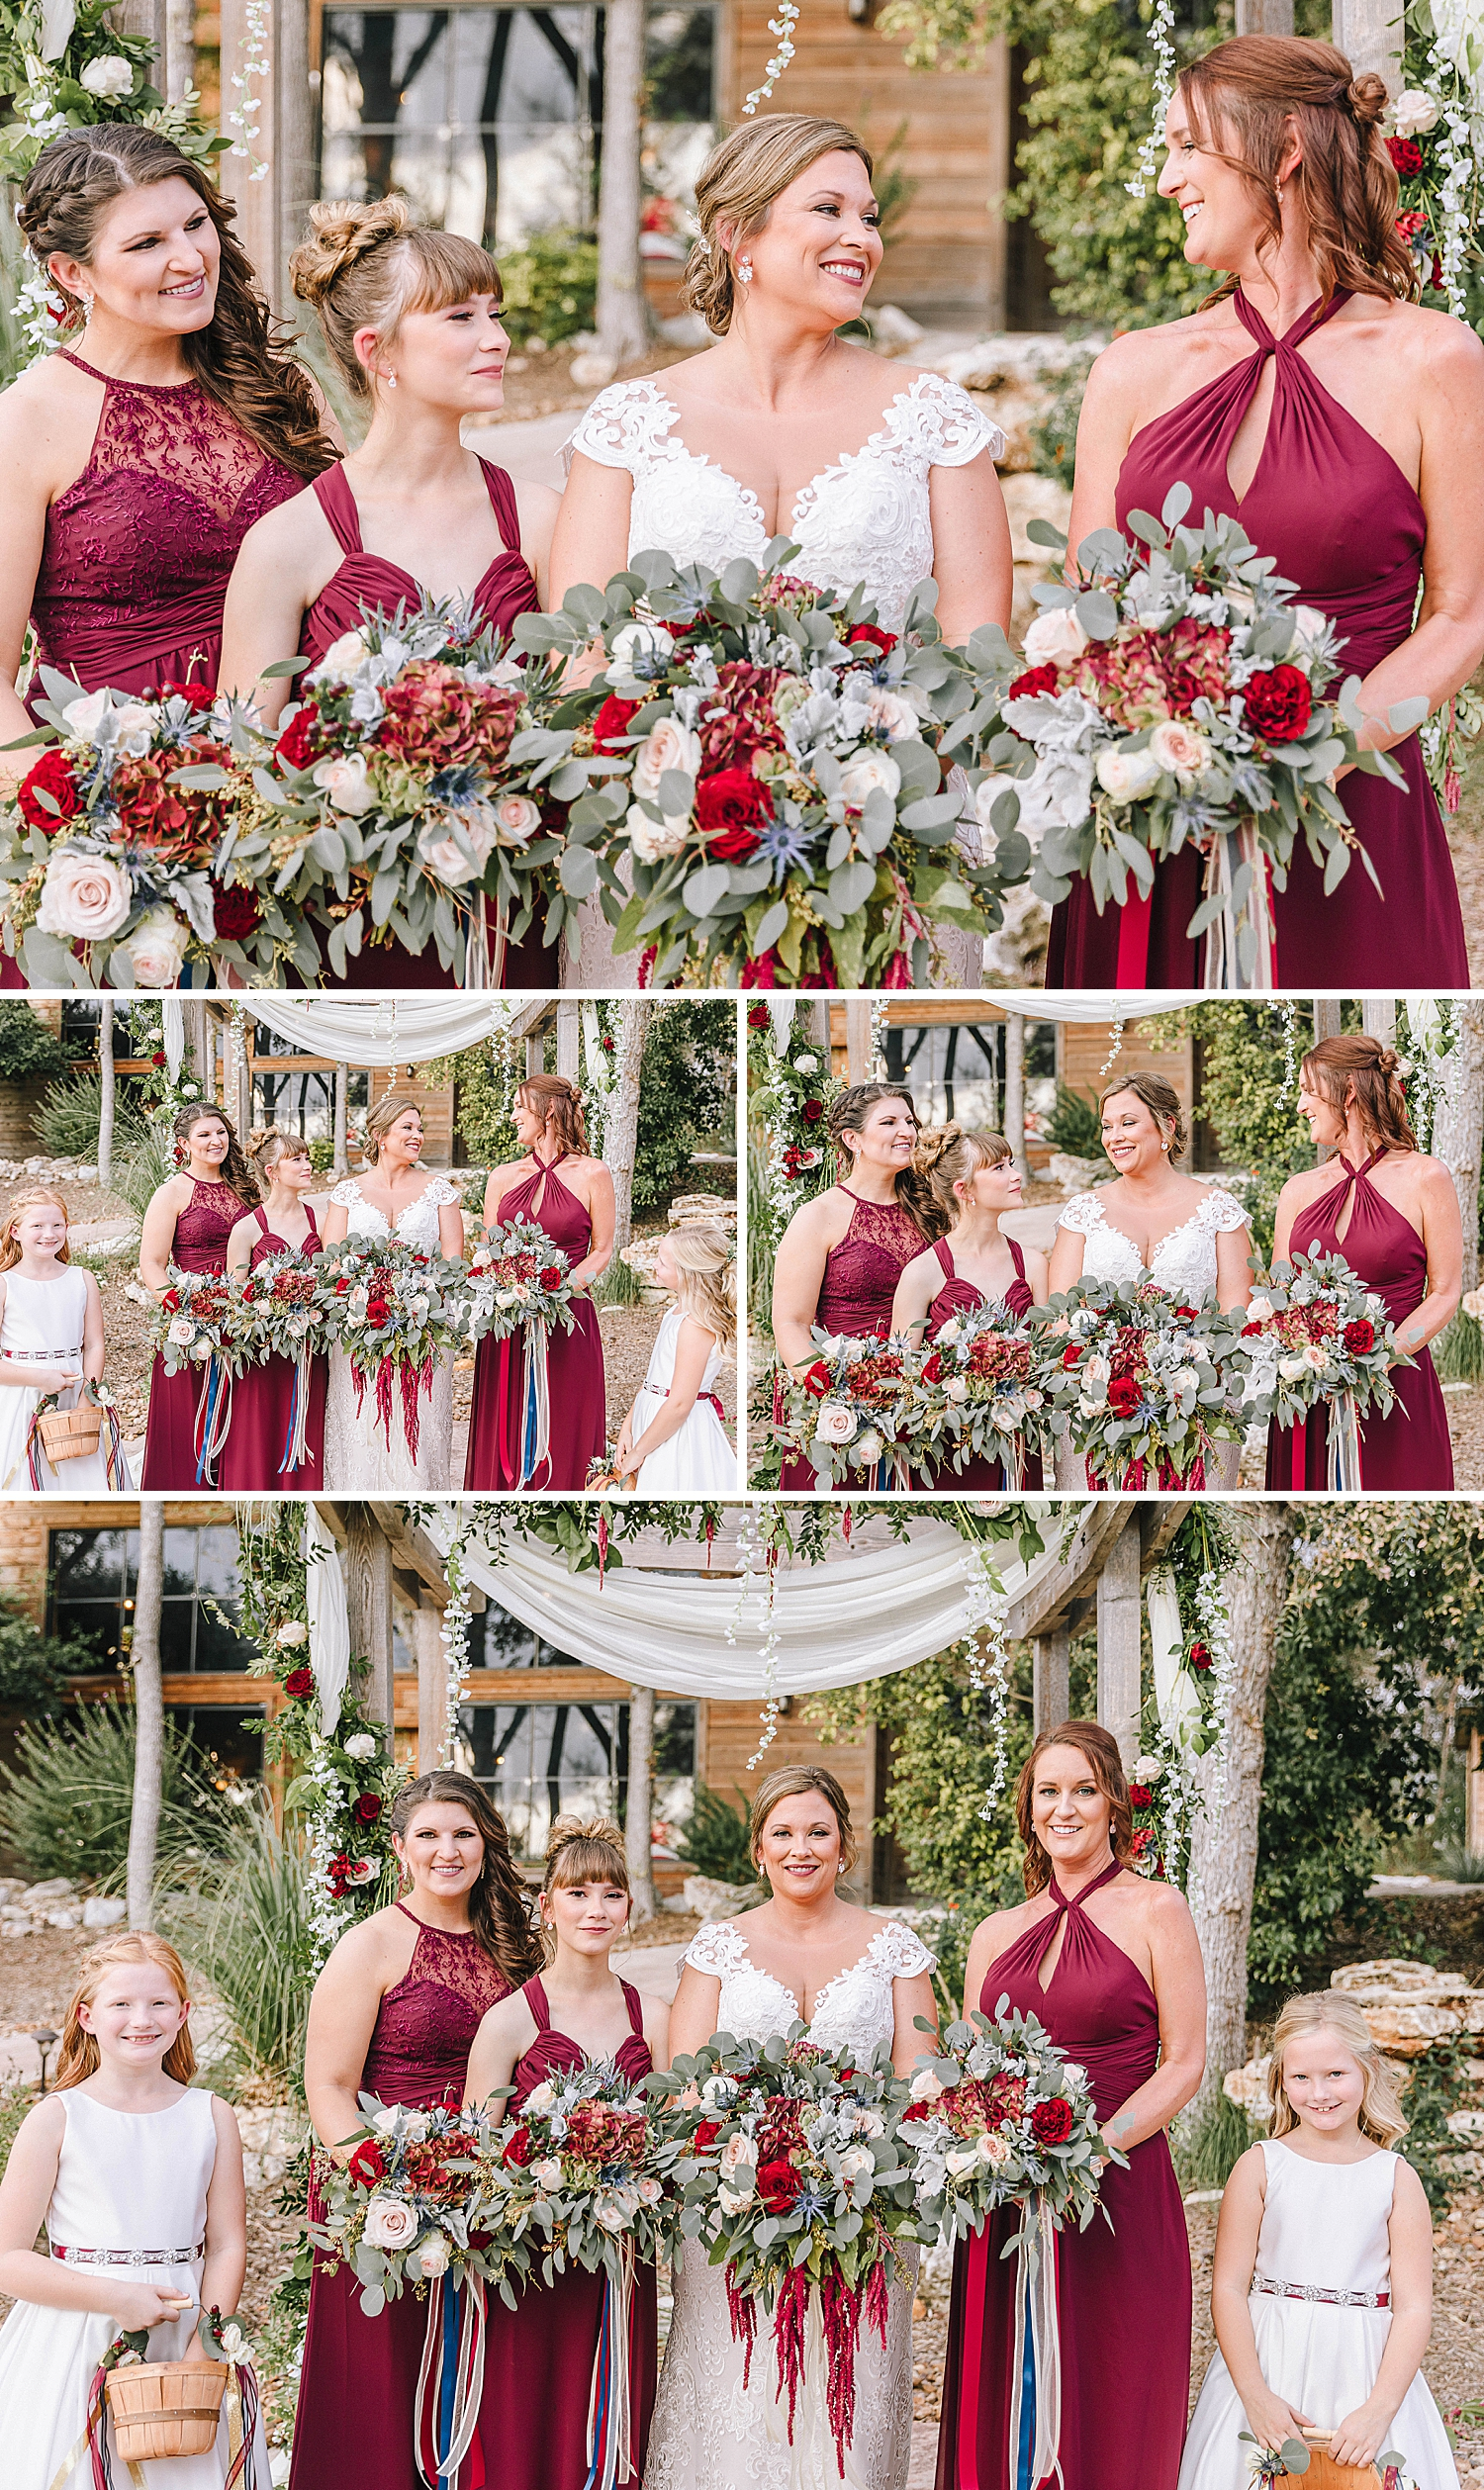 Geronimo-Oaks-Wedding-Venue-Seguin-Texas-Elegant-Navy-Burgundy-Wedding-Carly-Barton-Photography_0042.jpg